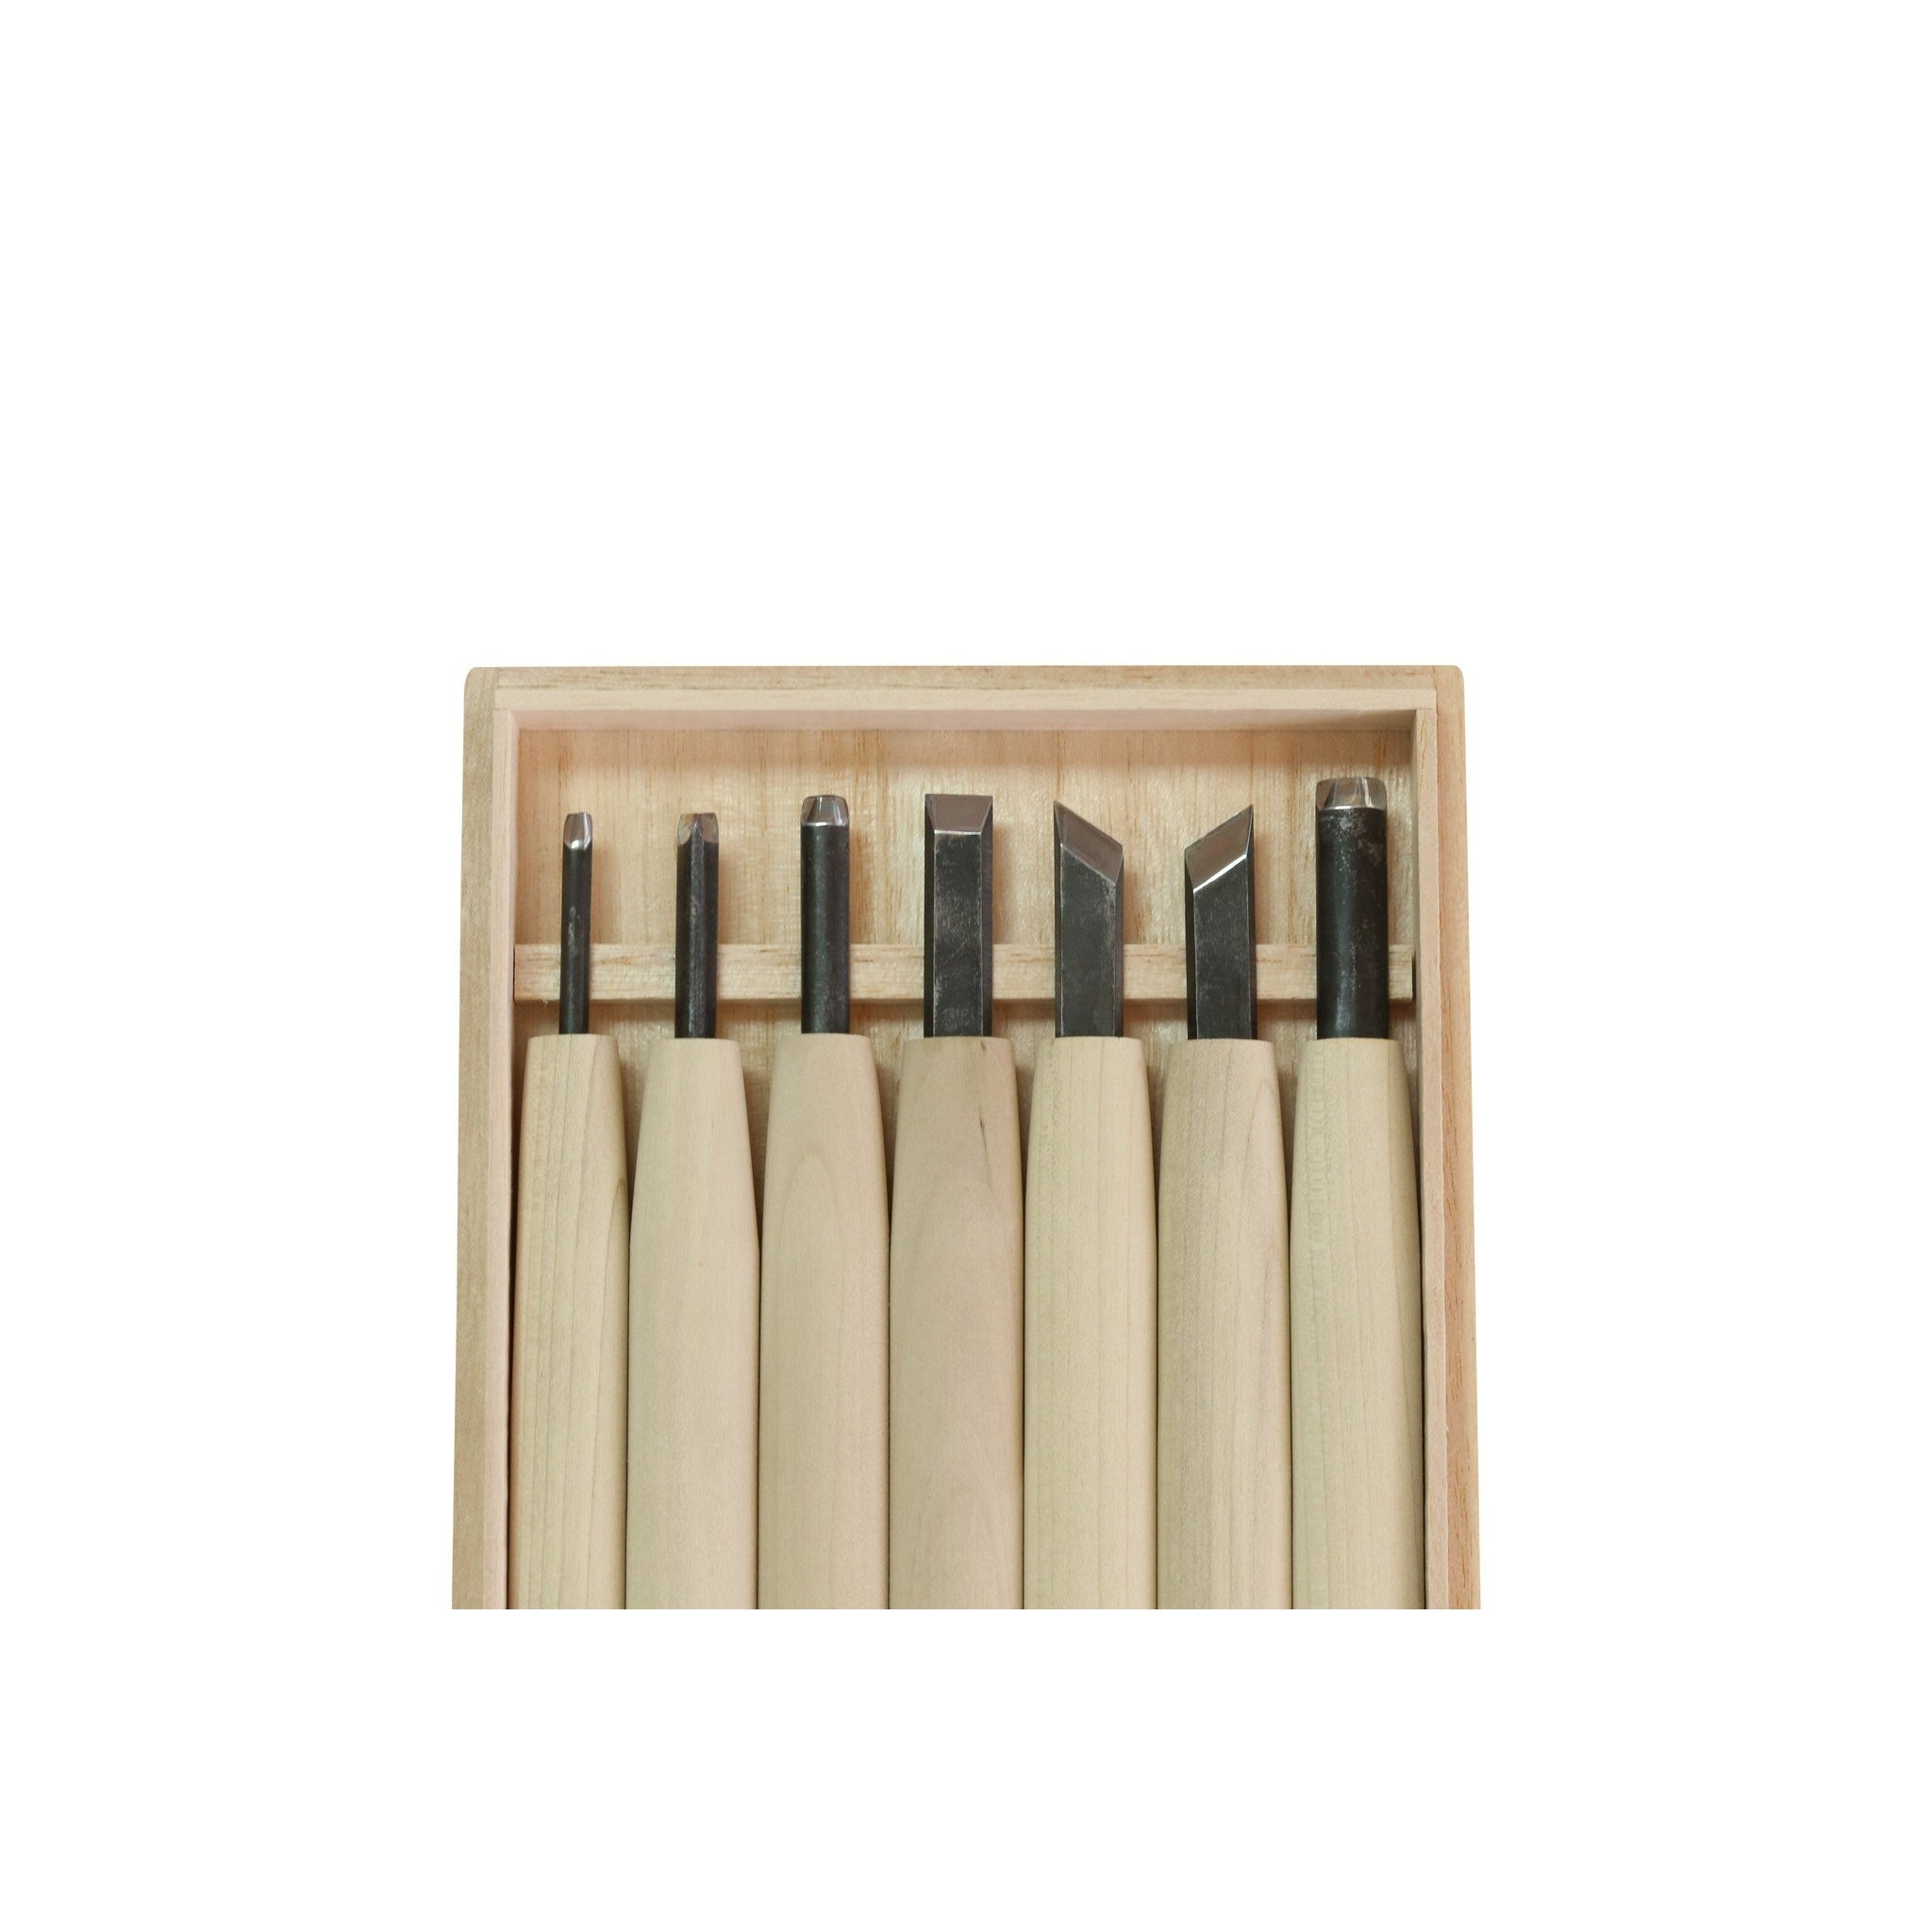 Taheiji Carving Chisel 7 piece Set - Japanese Tools Australia